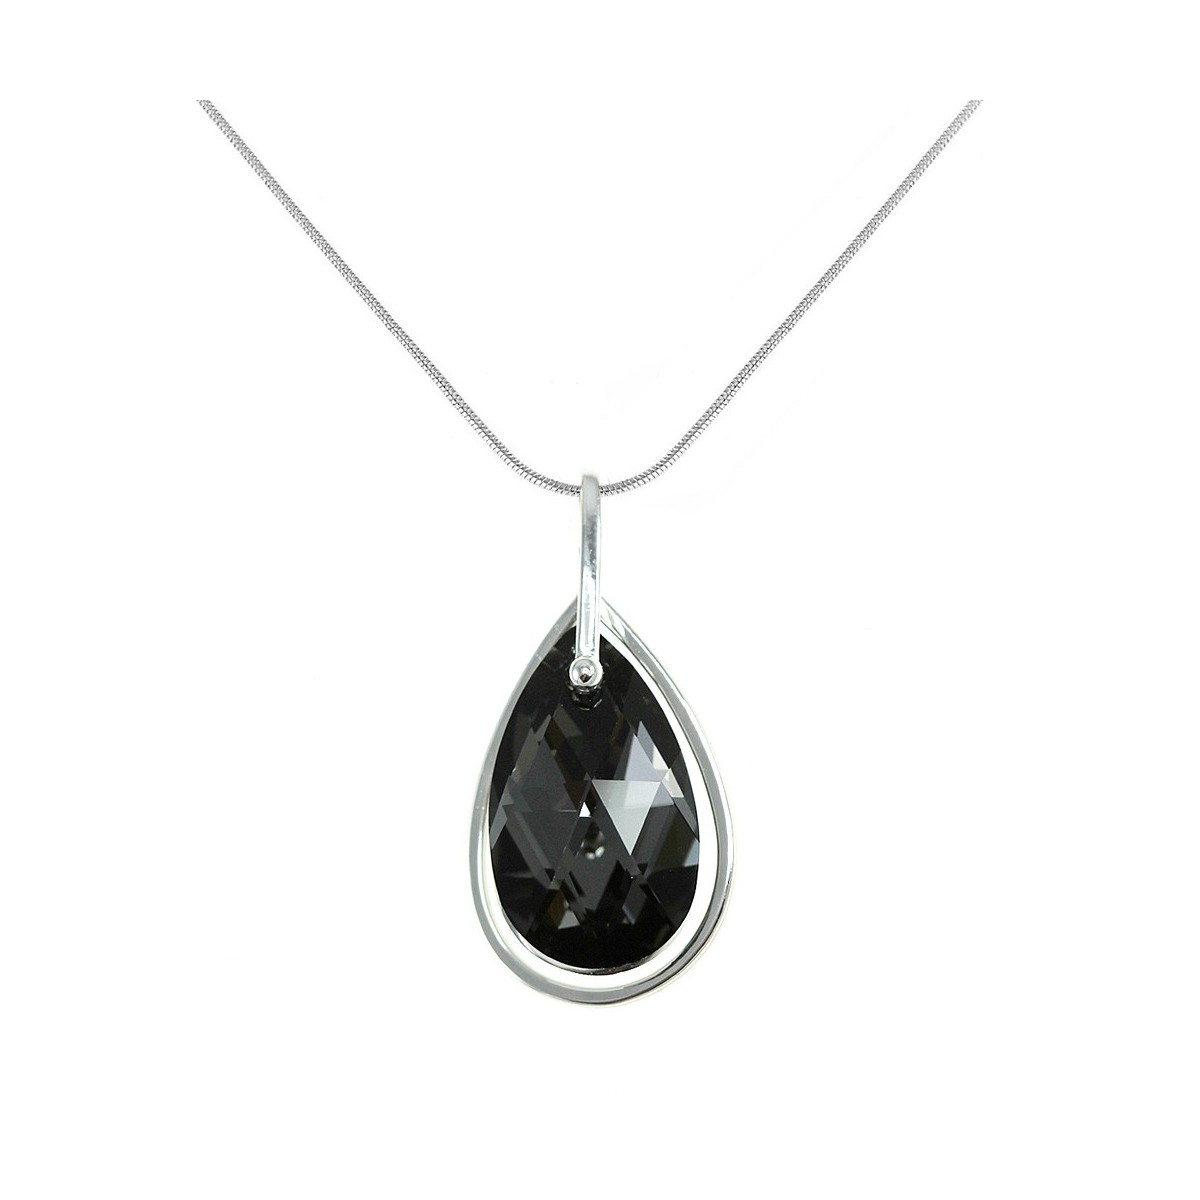 BS003-SN025-SINI Collier argenté et goutte cristal noir So Charm made with crystal from Swarovski